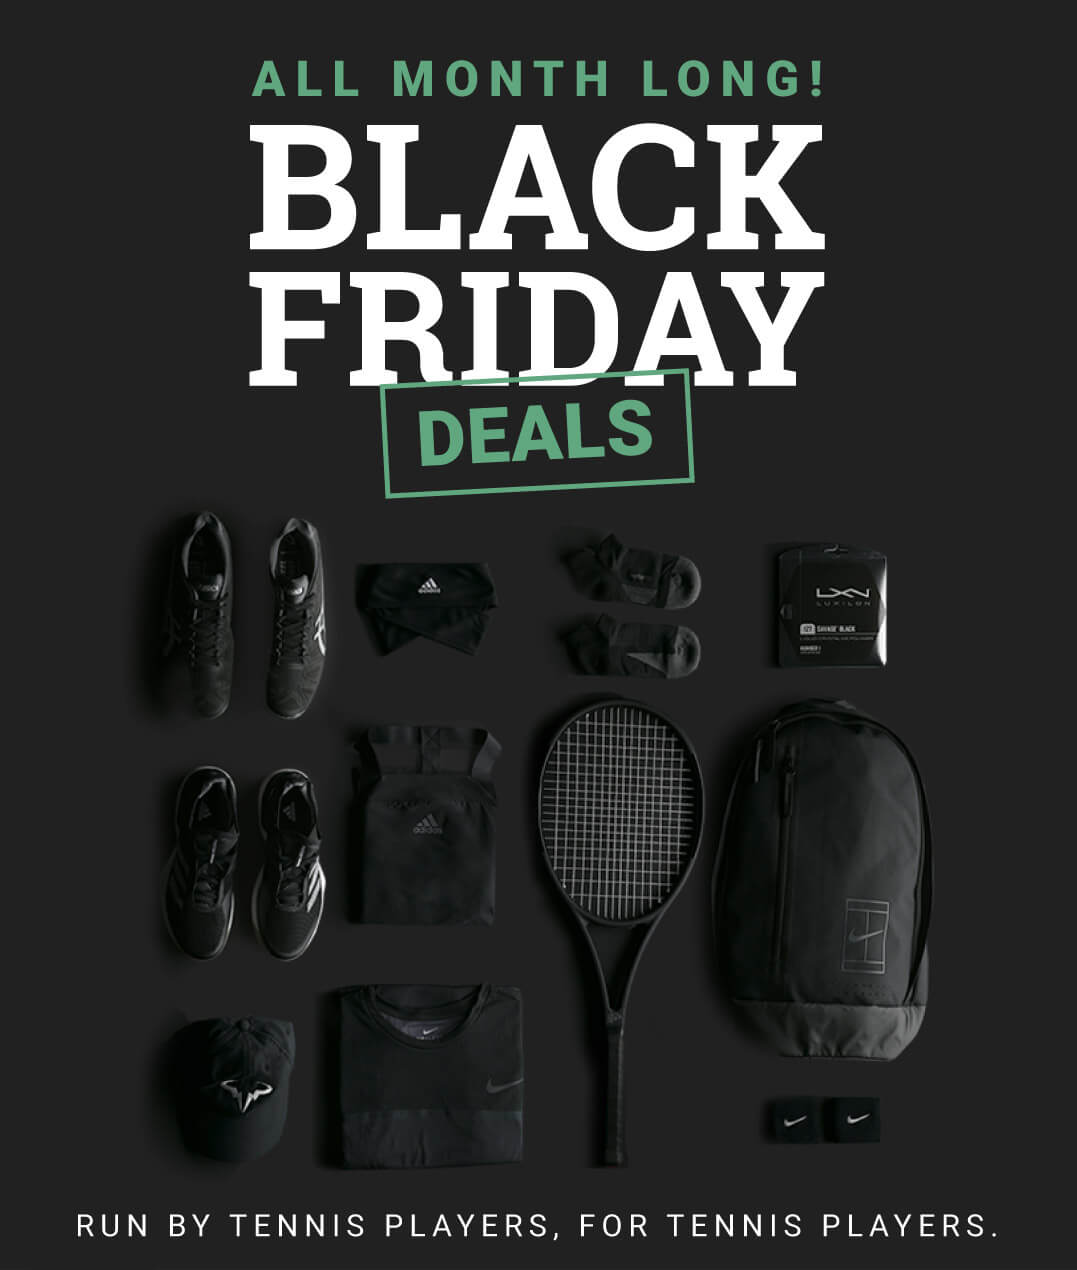 Black Friday Deals Start Now!